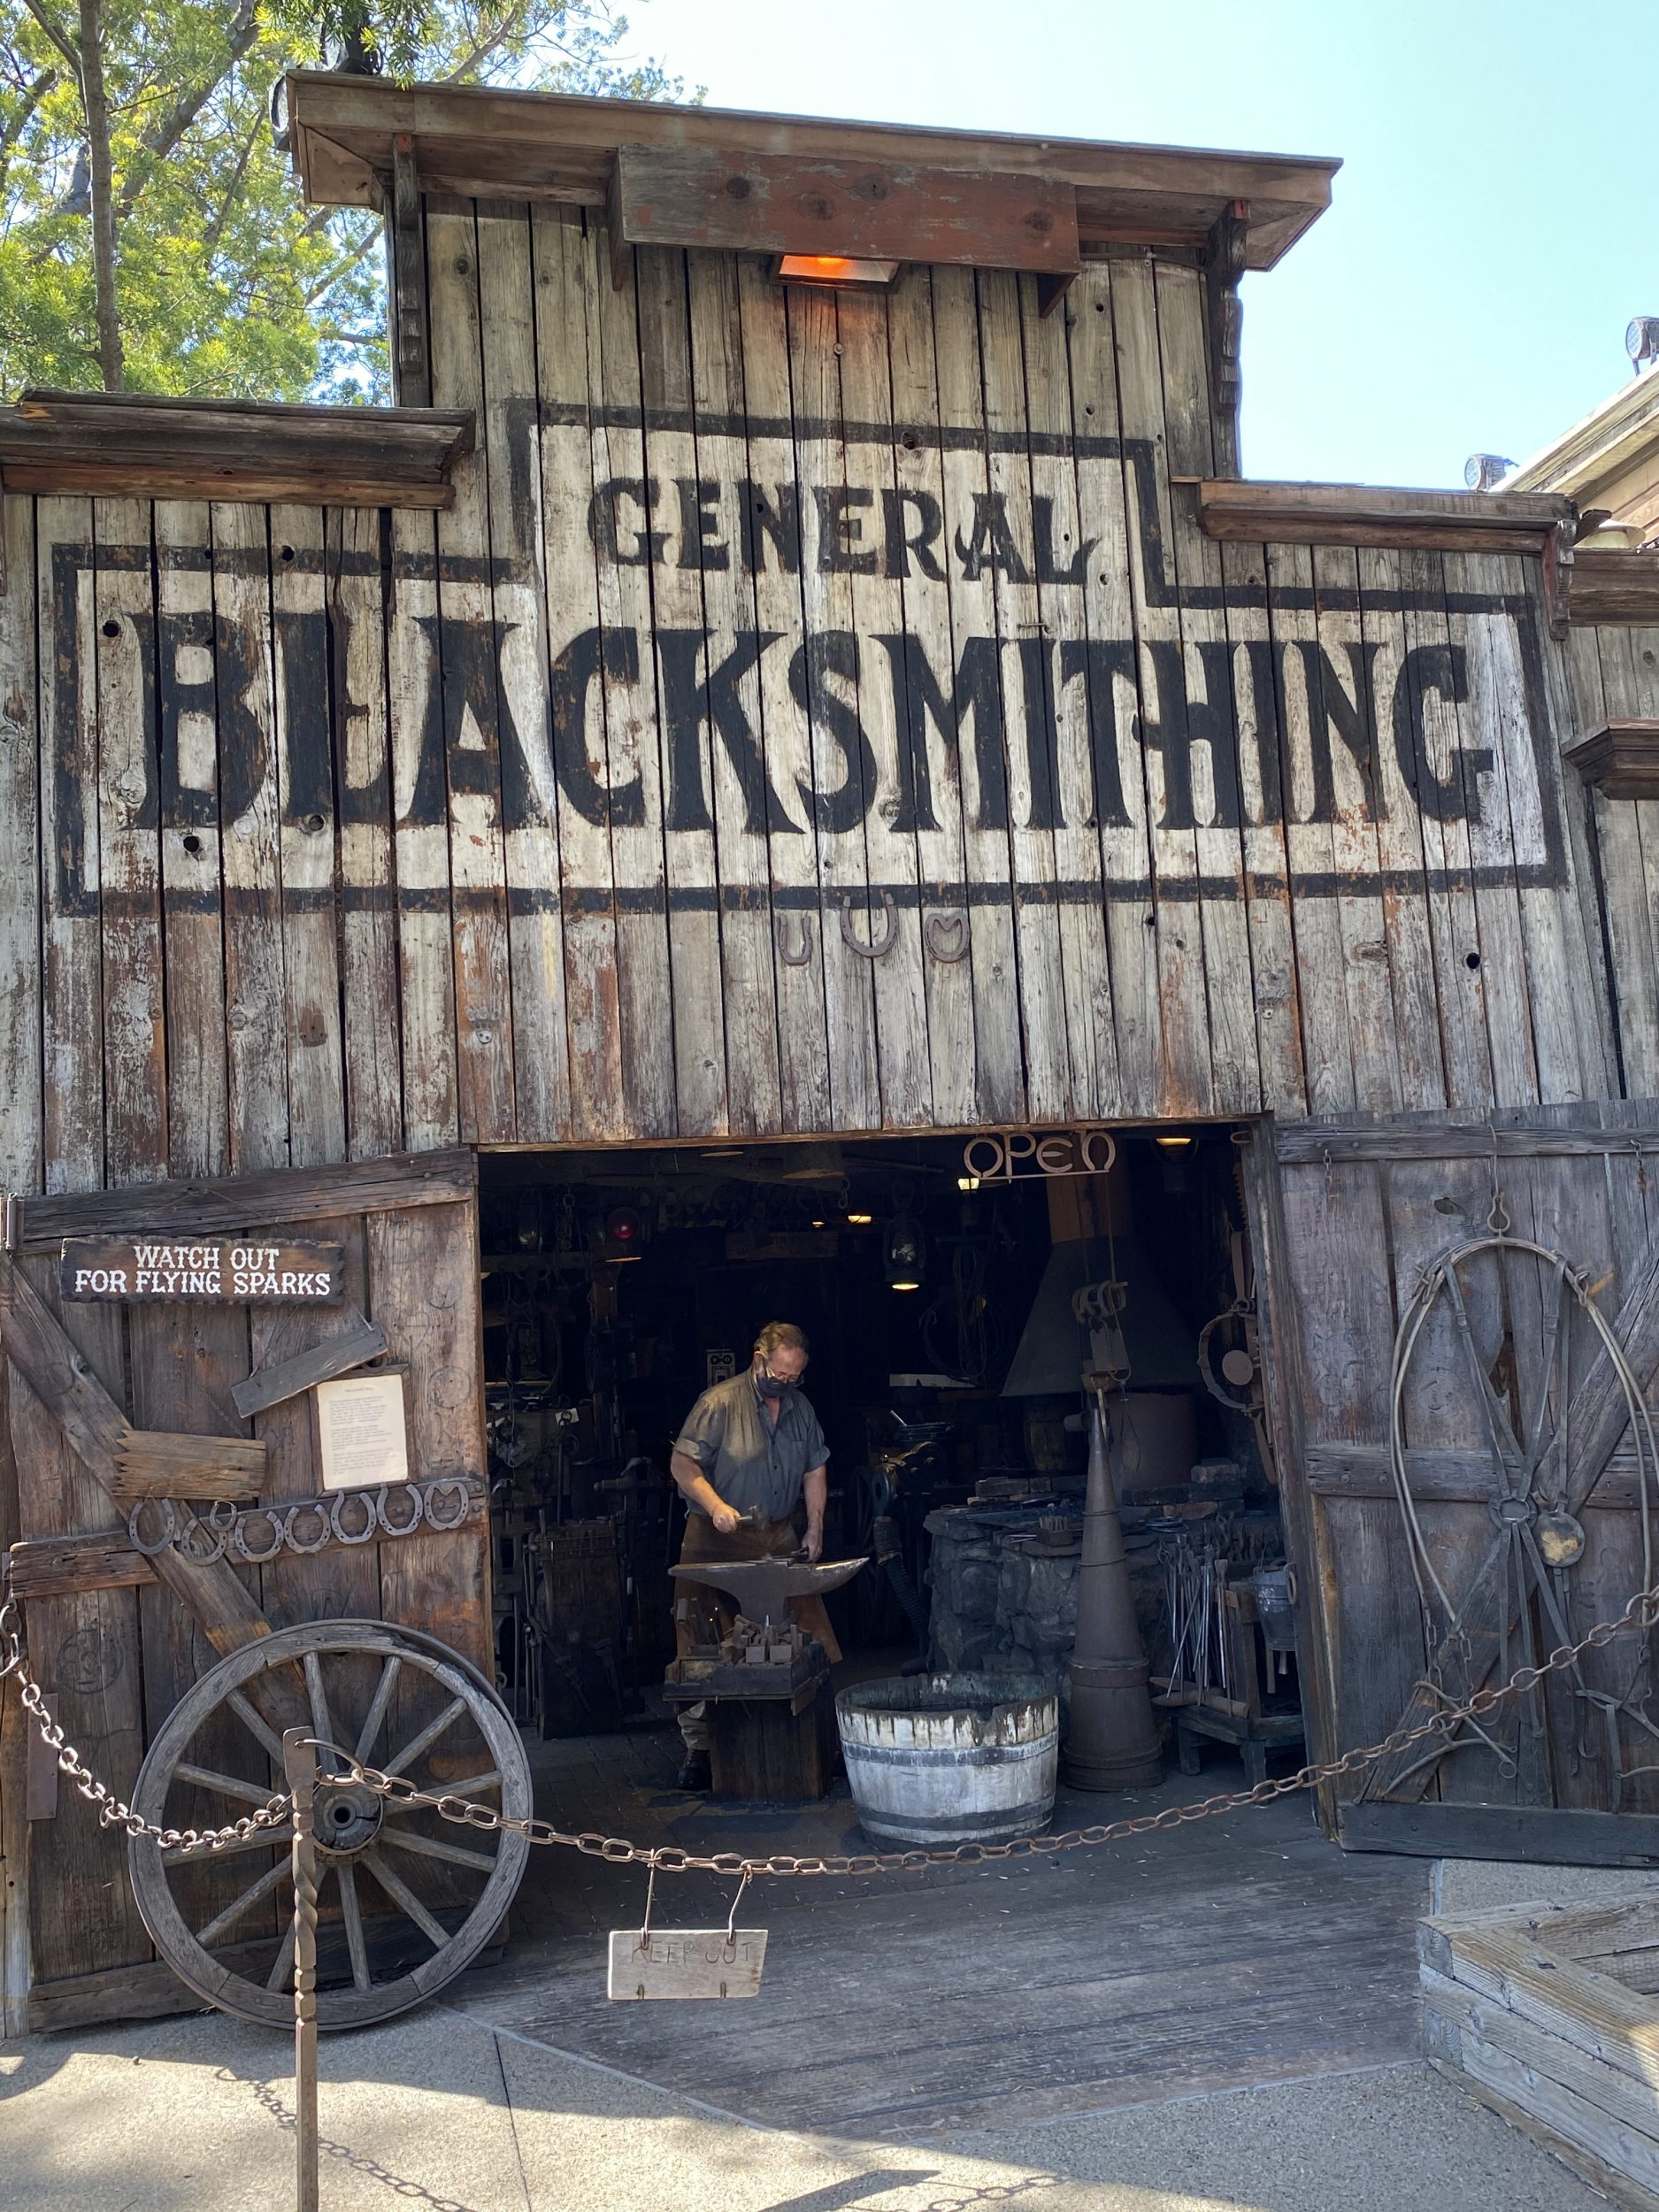 Historical General Blacksmith building in Ghost Town at Knott's Berry Farm is still a working blacksmith shop that makes pieces you can buy in the gift shop